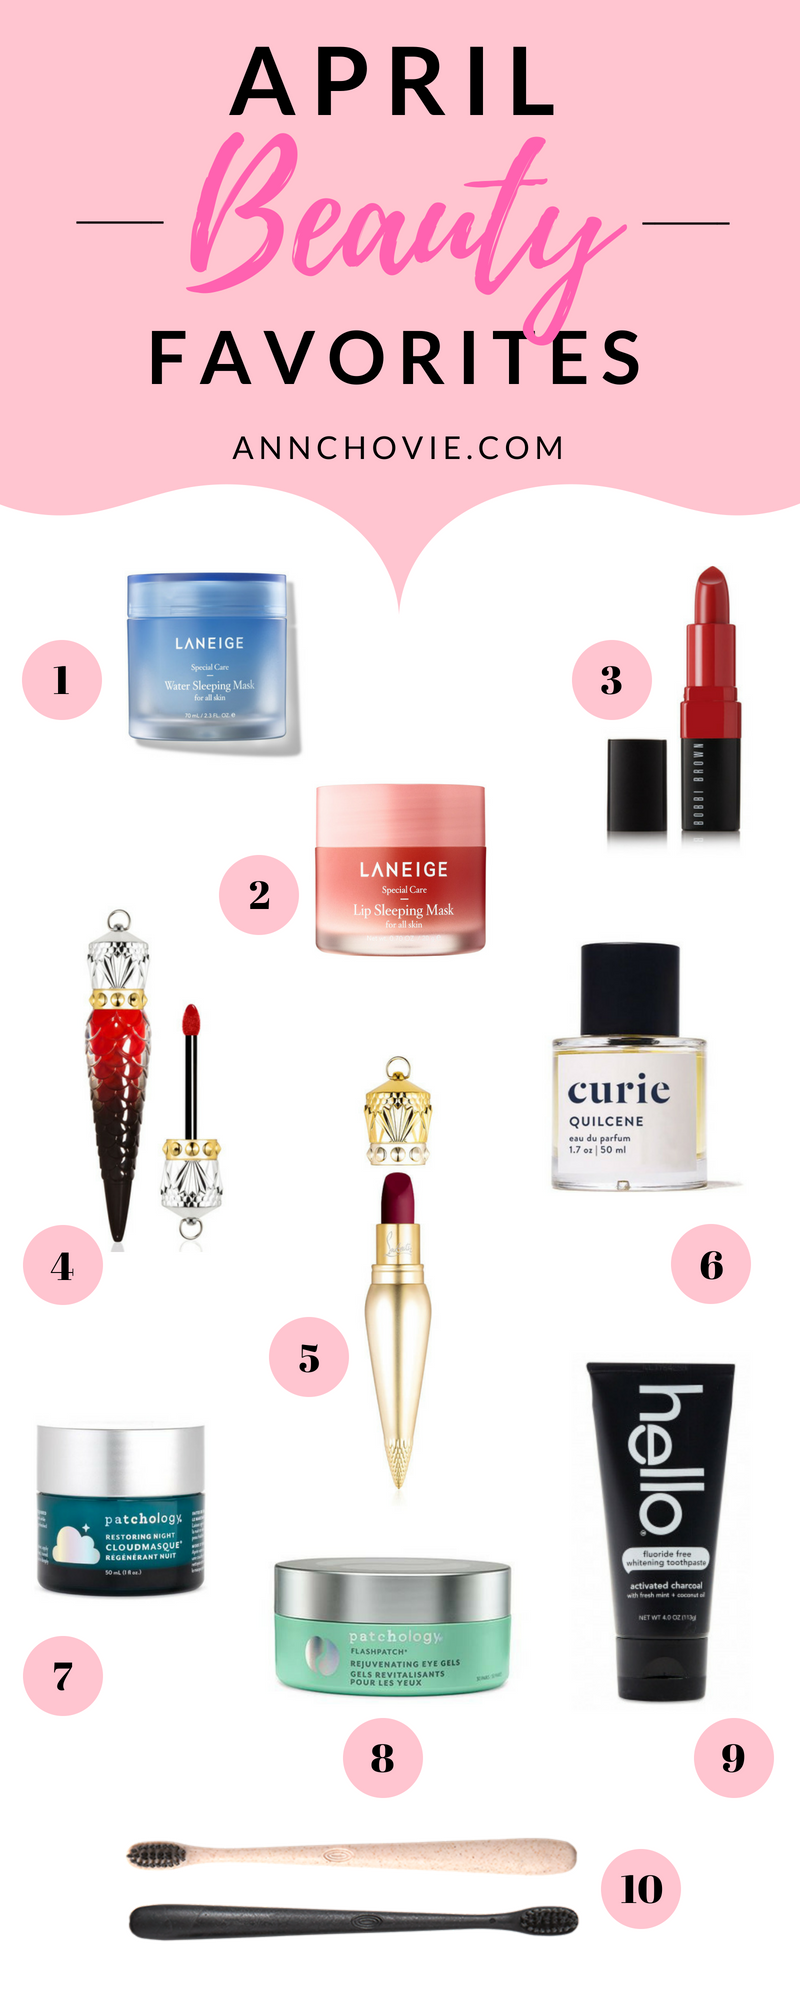 For this past month's April Beauty Favorites, I've got a lovely mix of skincare, beauty, and healthcare products that I'm excited to share with you! Check out my top picks on the blog along with in-depth beauty reviews! | BEAUTY PRODUCTS | SKINCARE PRODUCTS | SKINCARE ROUTINE | SKINCARE FAVORITES | SKINCARE TIPS | BEST MAKEUP PRODUCTS |